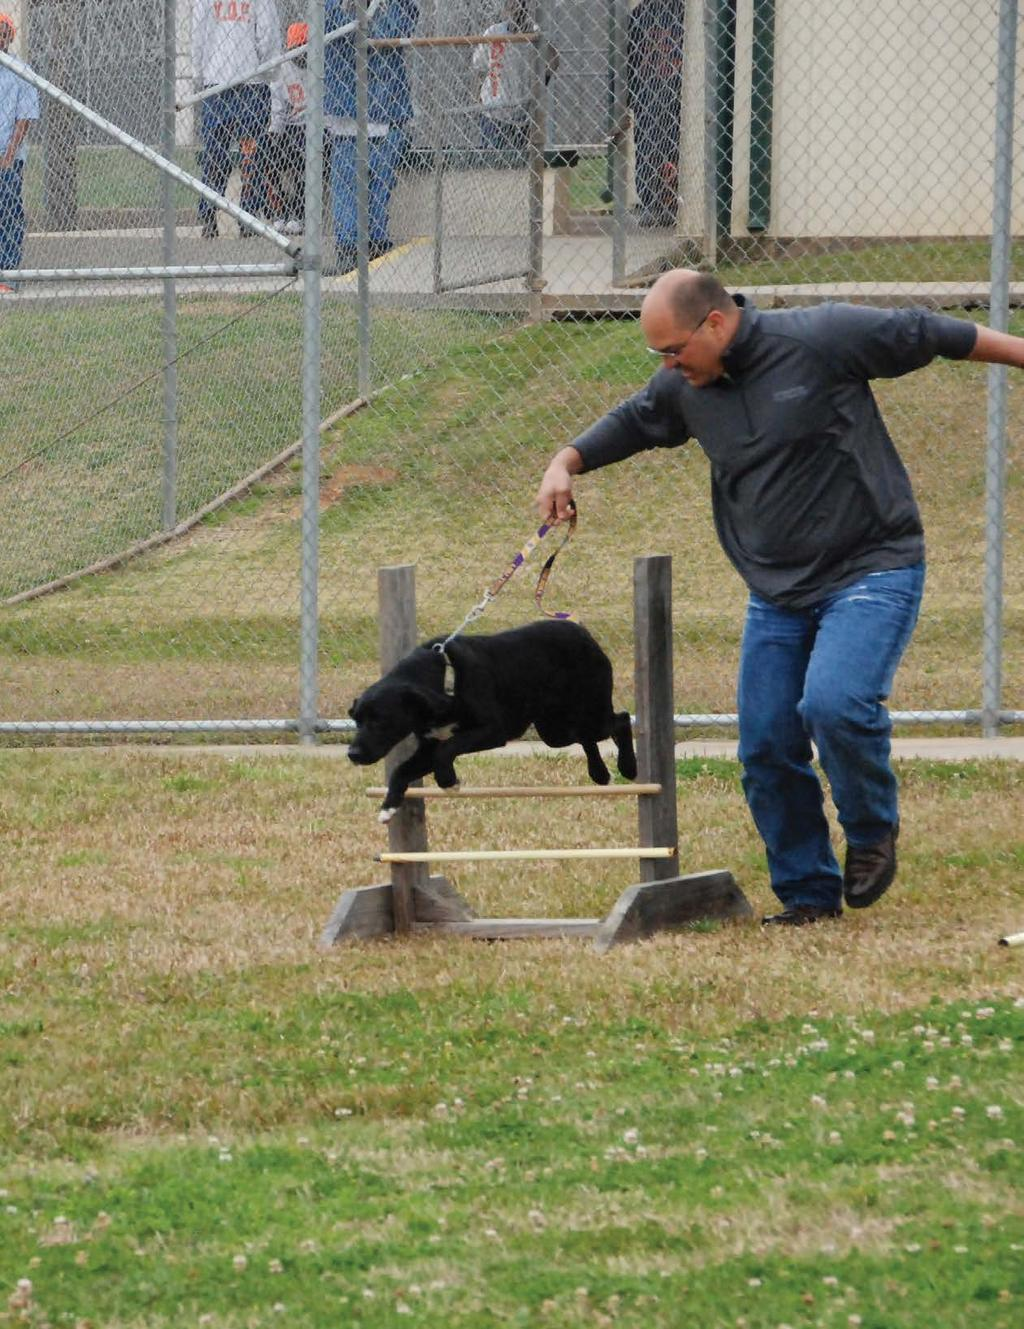 ances: The dog covers the agility course with gusto, veering around weave poles, jumping hurdles, pushing through tunnels and tires, bounding over teeter boards, then racing back to the man waiting